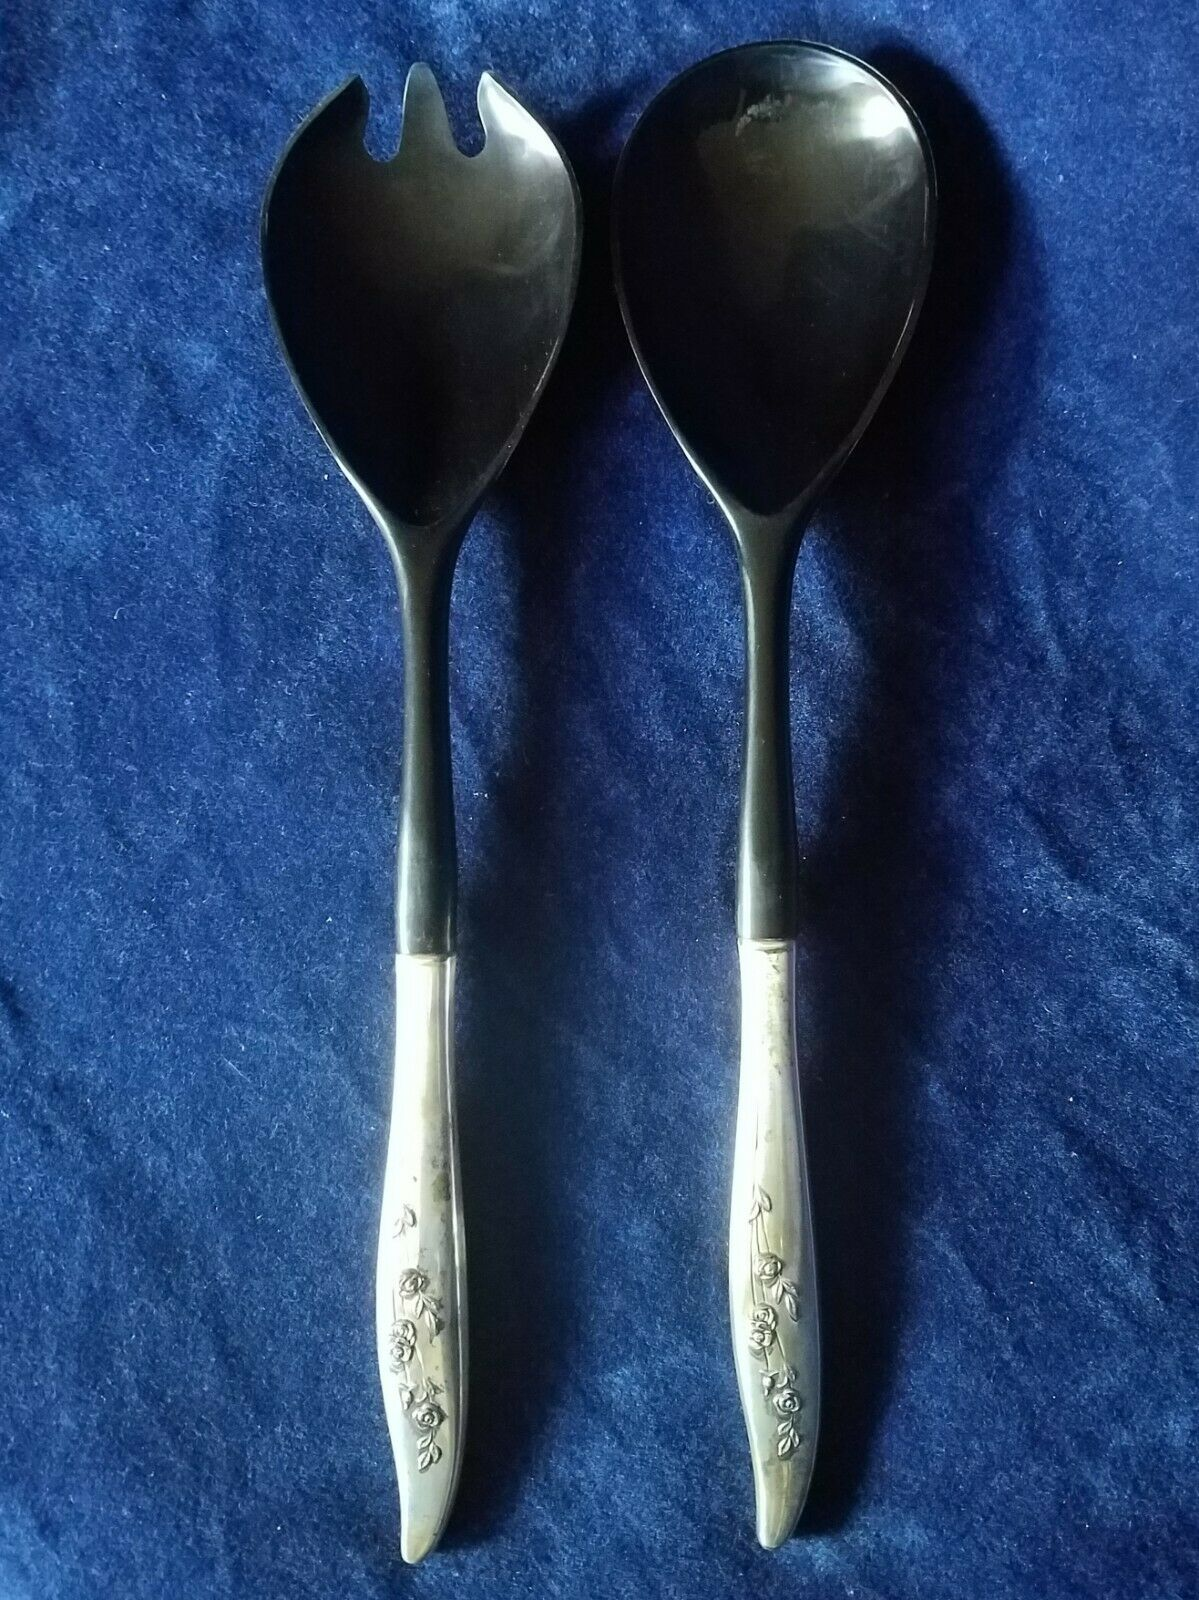 YOUNG LOVE 11 1/4 HOLLOW HANDLE SALAD SERVING SET By Oneida Sterling - Estate - $71.50